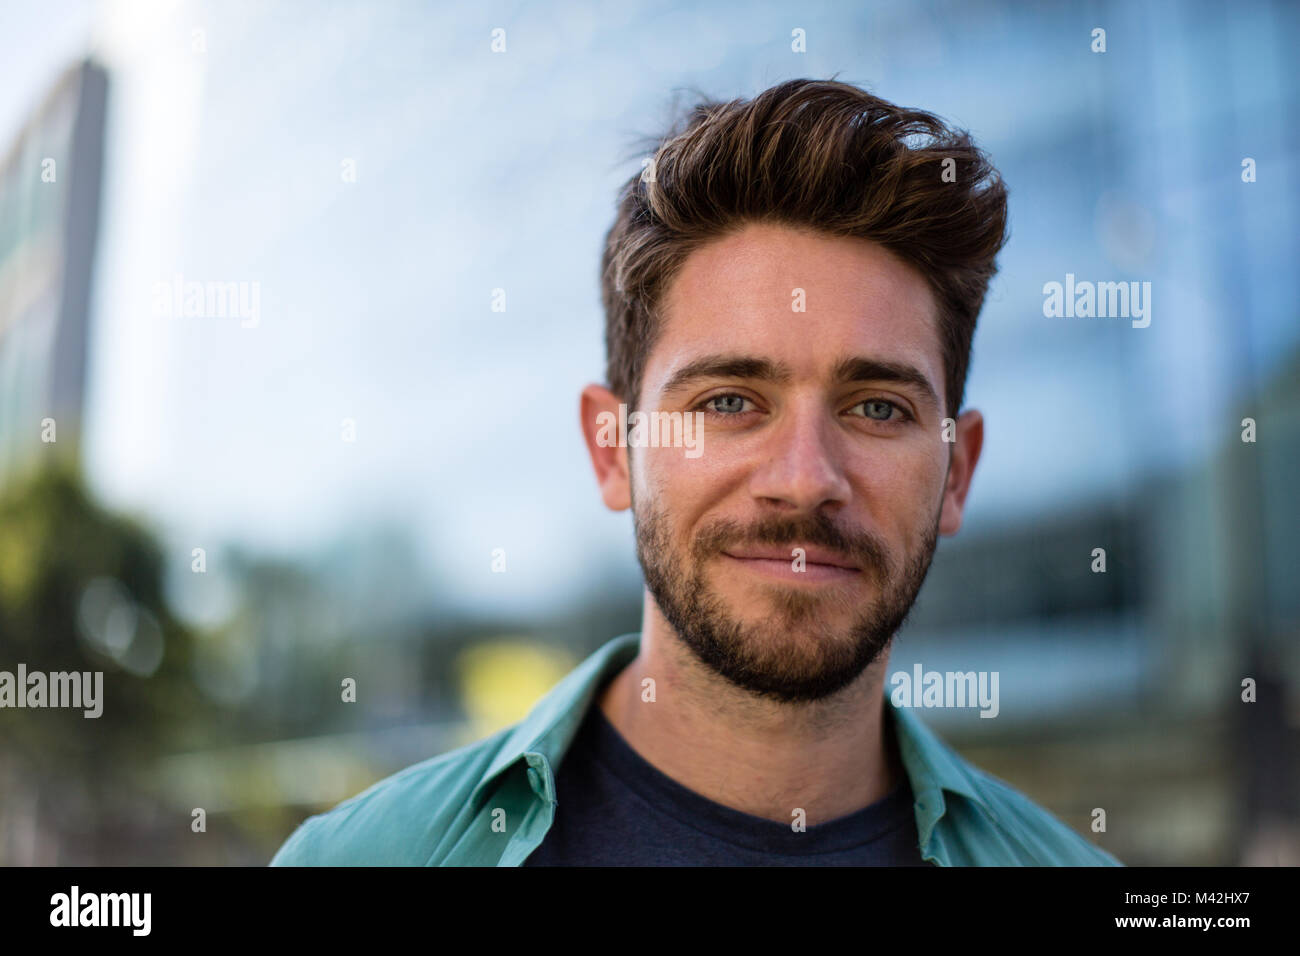 Portrait of young adult in modern city - Stock Image